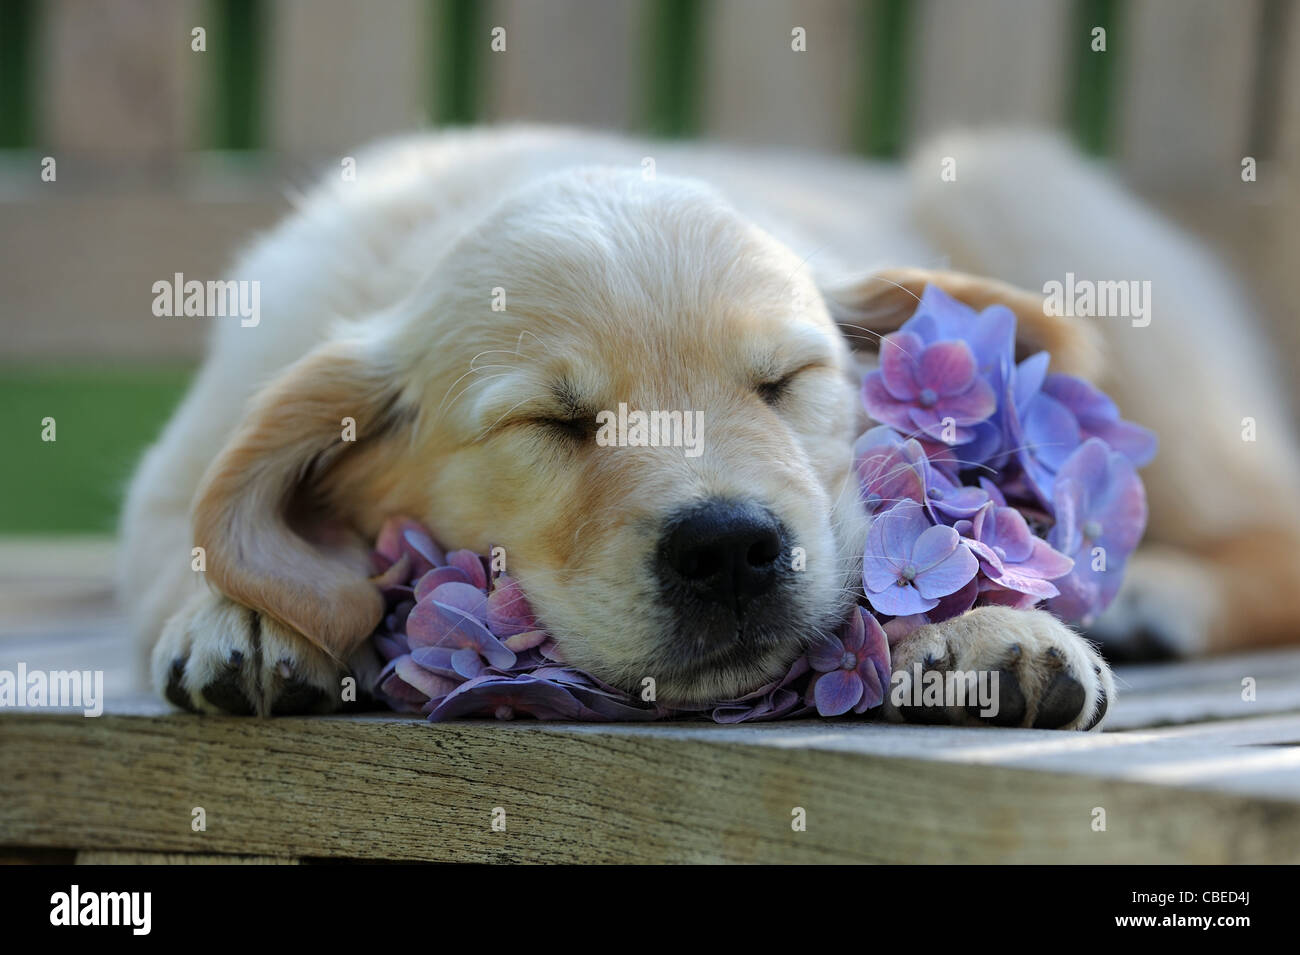 Golden Retriever (Canis lupus familiaris). Puppy sleeping on a blue Hydrangea flower. - Stock Image